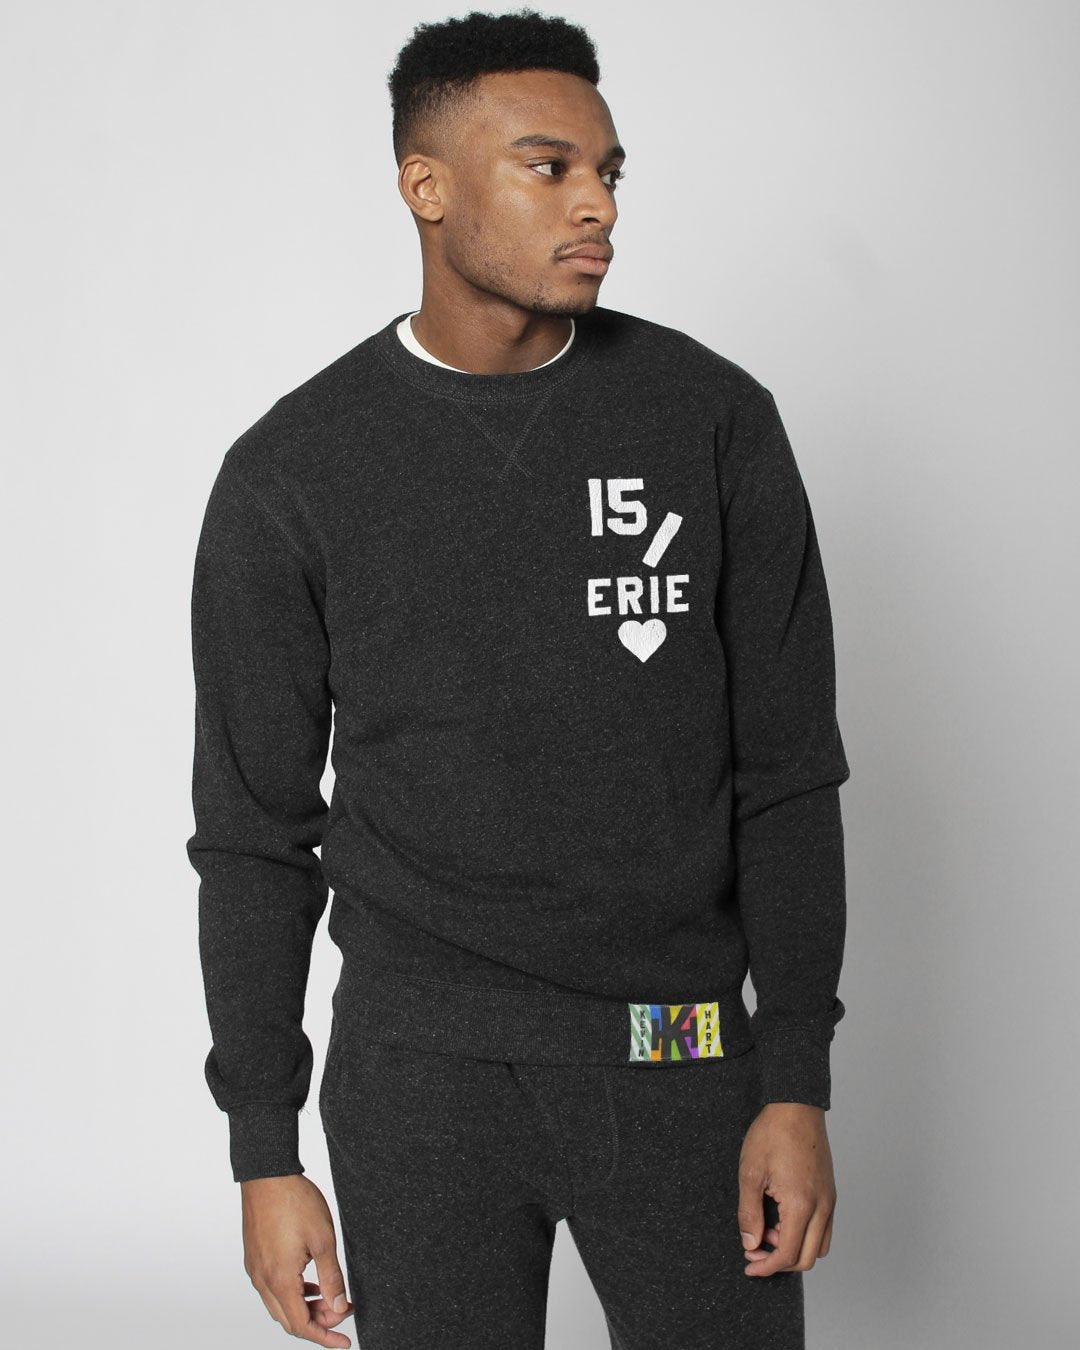 Kevin Hart 15th & Erie Sweatshirt - Roots of Inc dba Roots of Fight